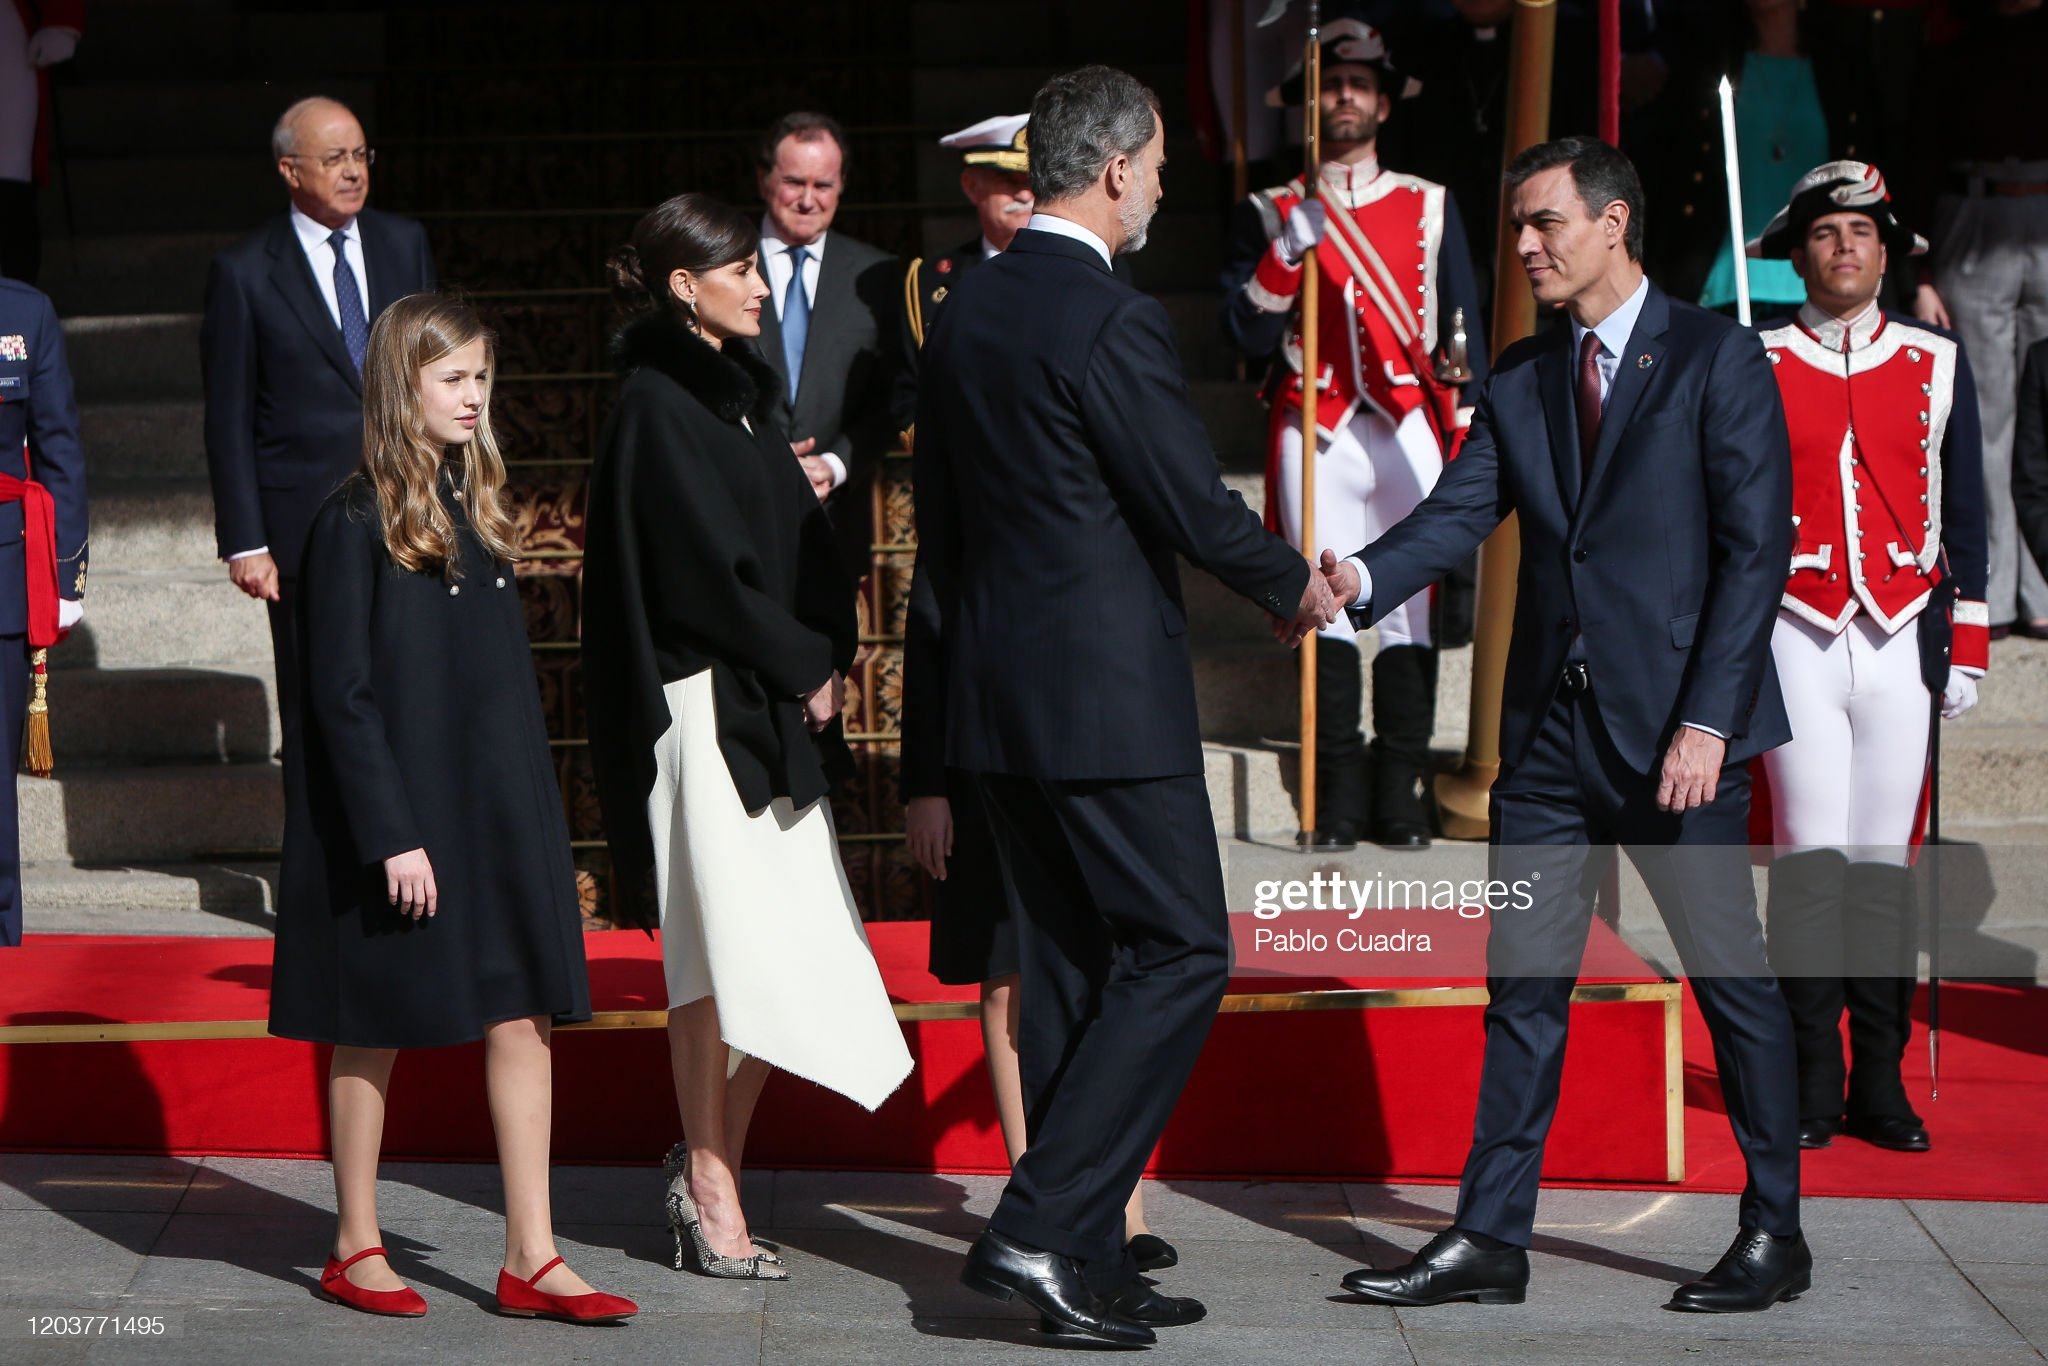 https://media.gettyimages.com/photos/president-of-the-spanish-government-pedro-sanchez-king-felipe-vi-of-picture-id1203771495?s=2048x2048